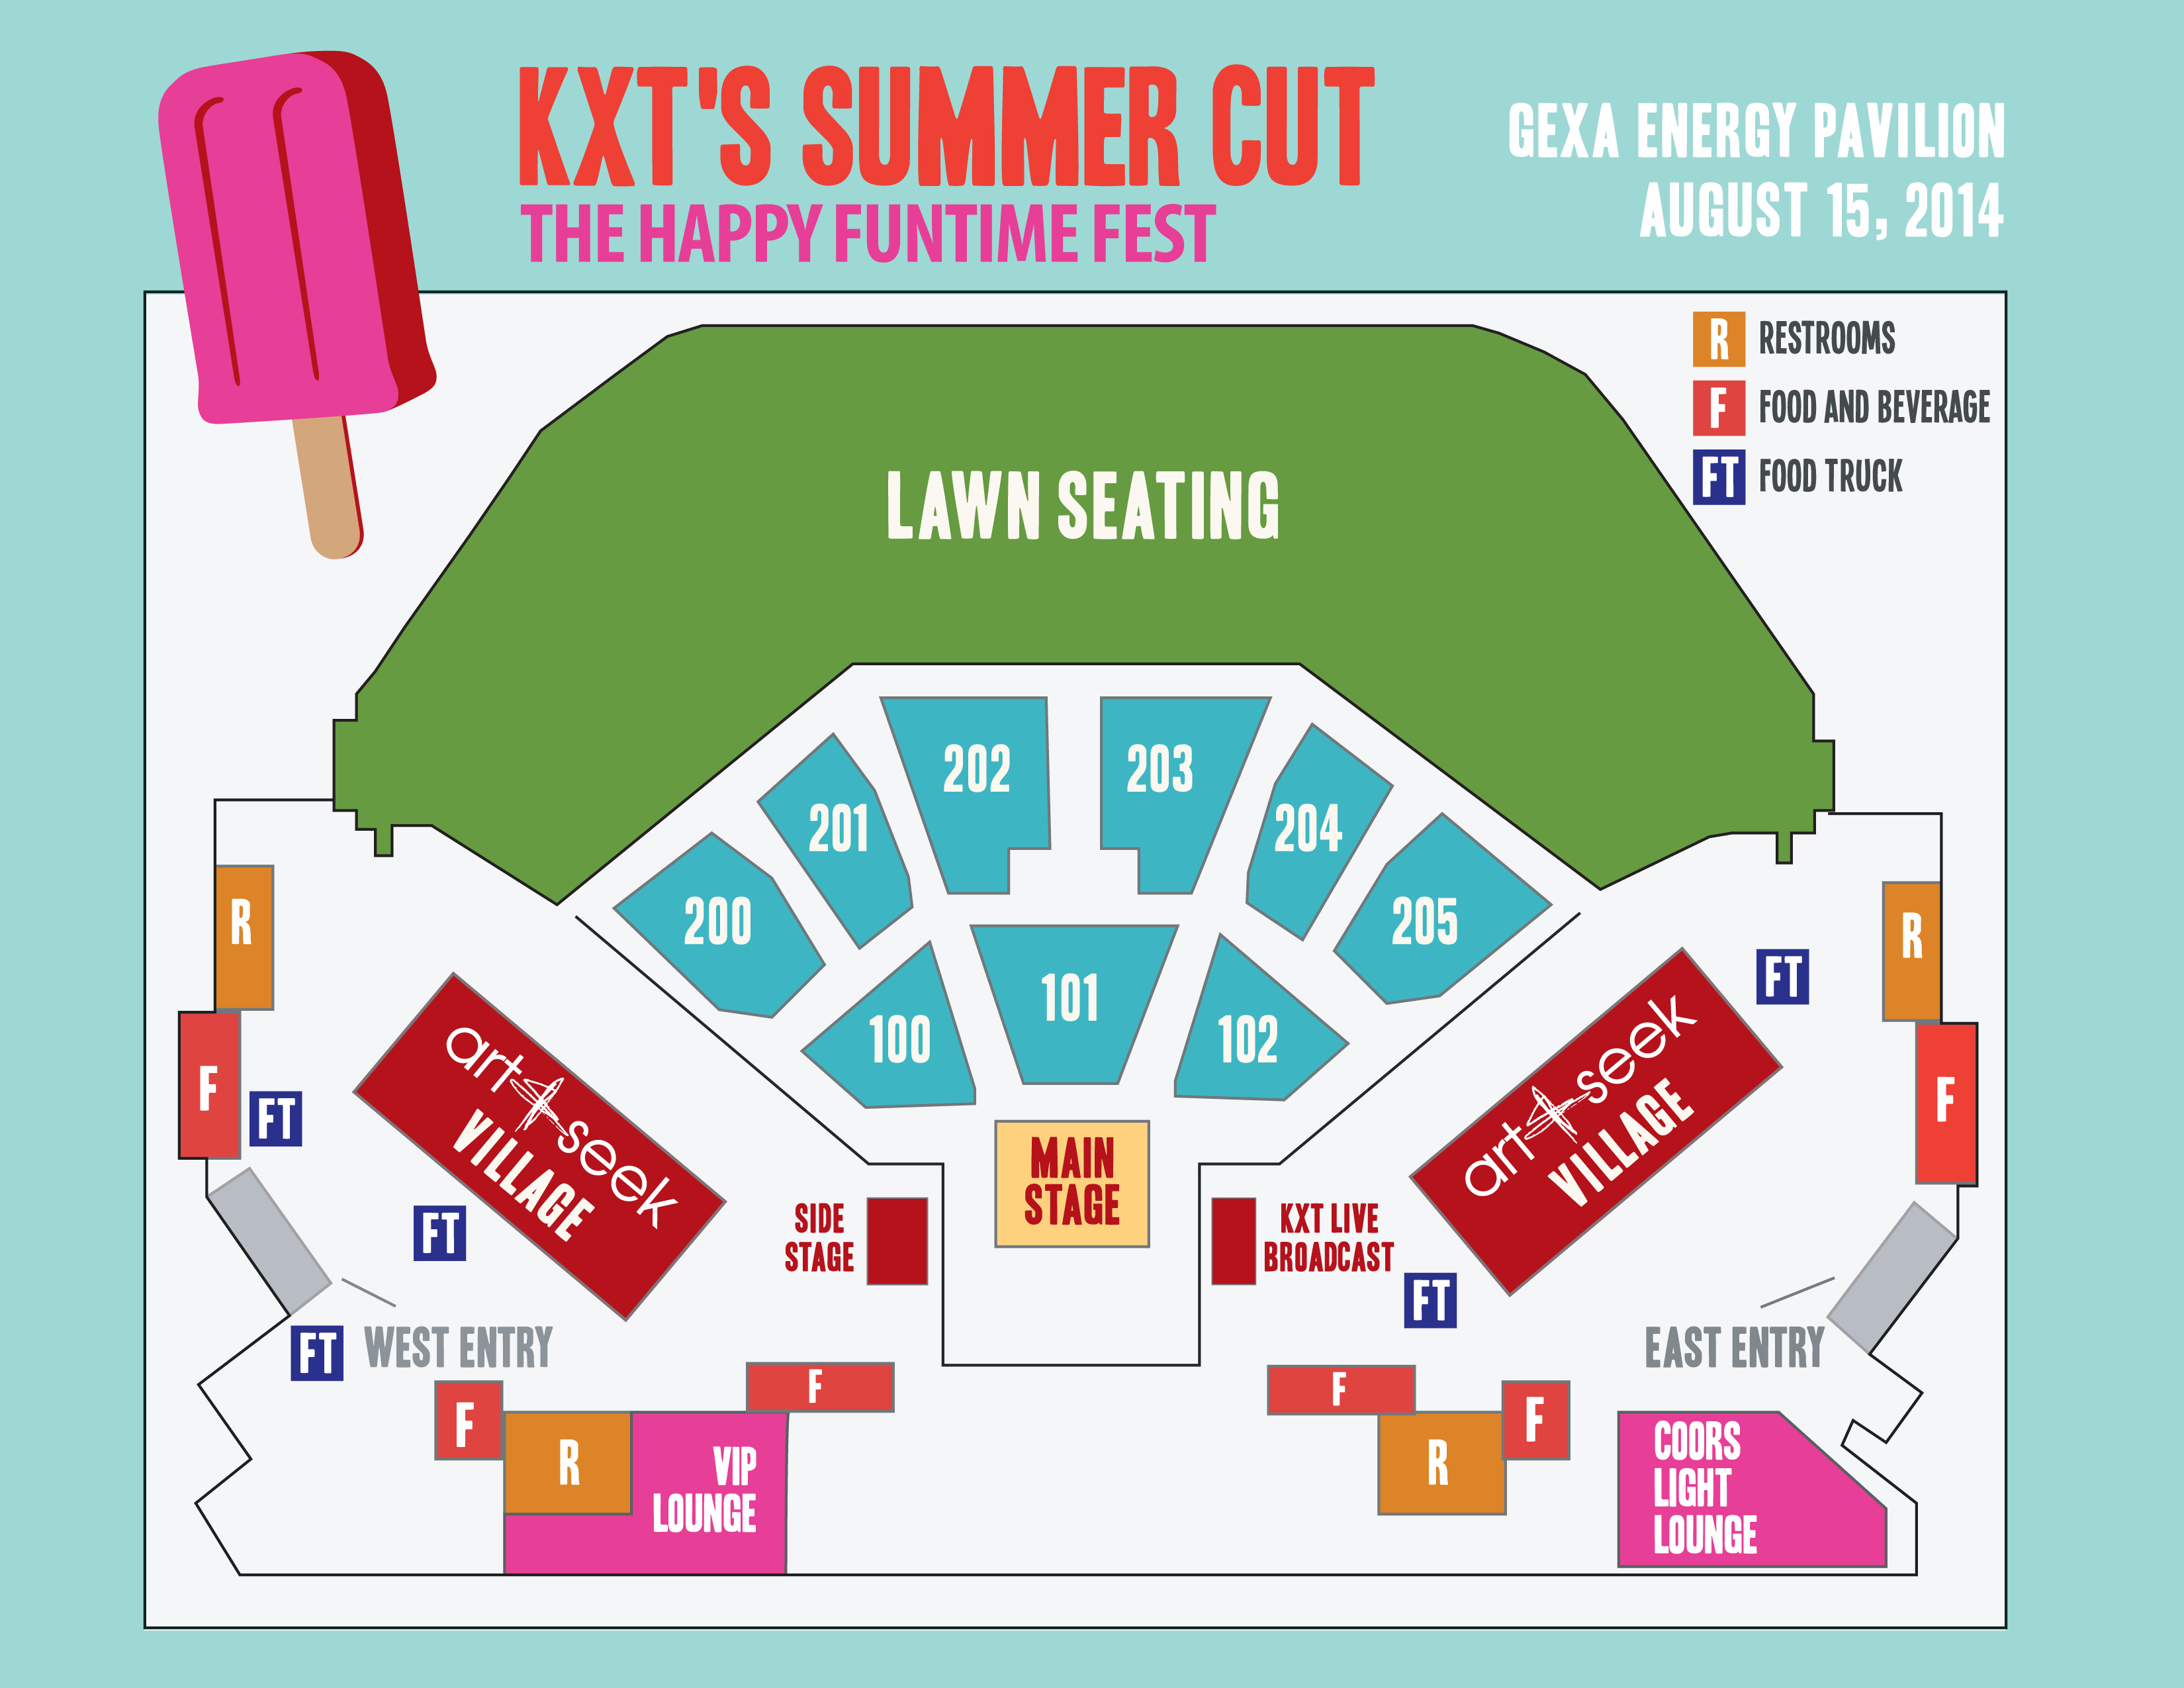 gexa_map_2014_final Gexa Energy Pavilion Seating Map on house of blues seating map, sports authority field at mile high seating map, fiddler's green amphitheatre seating map, gexa energy theater, constellation brands performing arts center seating map, warner theatre seating map, woodlands pavilion seating map, gexa seatting chart with numbers, bethel woods center for the arts seating map, first niagara pavilion seating map, glass cactus seating map, amalie arena seating map, oakdale theatre seating map, gexa seat map, merriweather post pavilion seating map, xfinity center seating map, mandalay bay events center seating map, allen event center seating map, red hat amphitheater seating map, concord pavilion seating map,